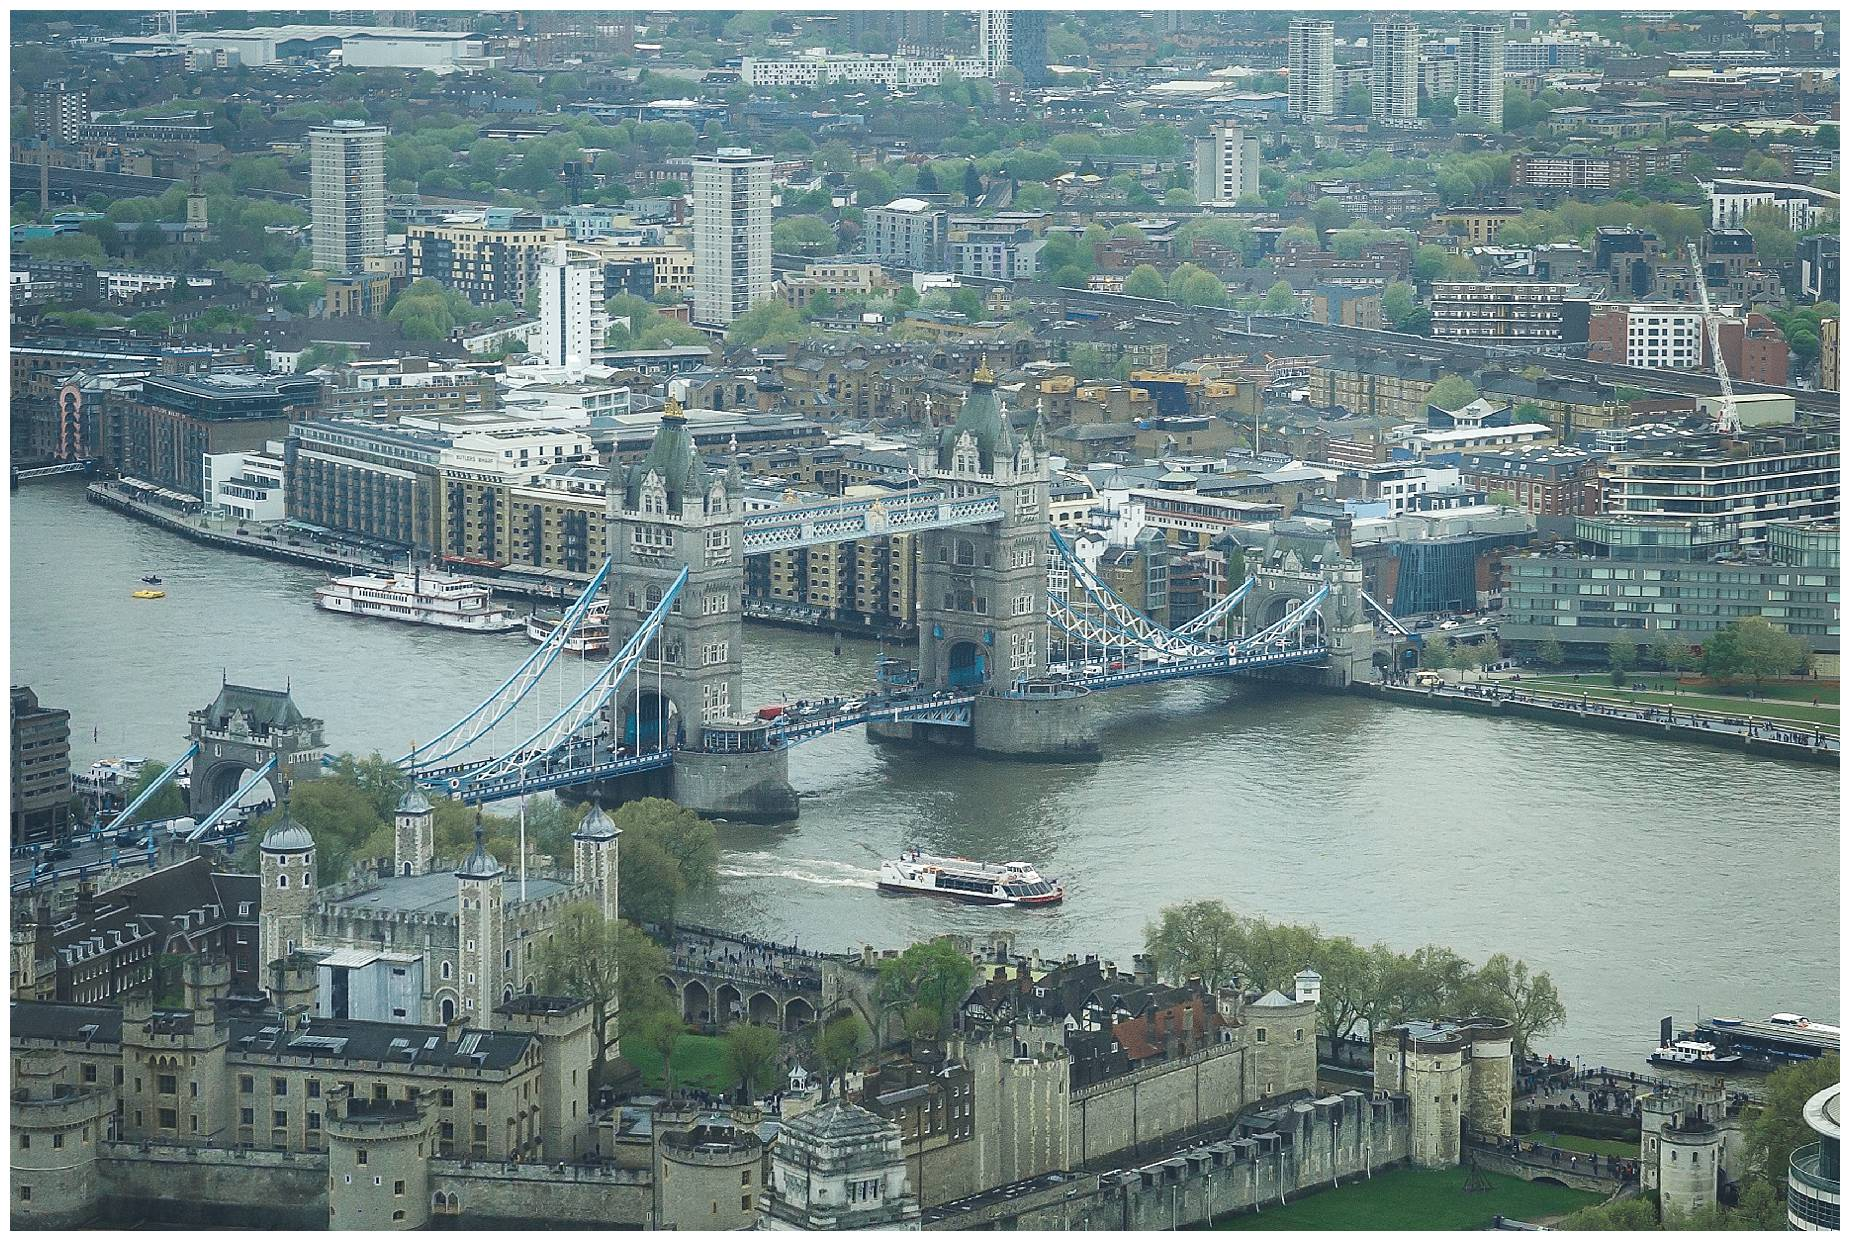 The view of Tower Bridge from the Gherkin